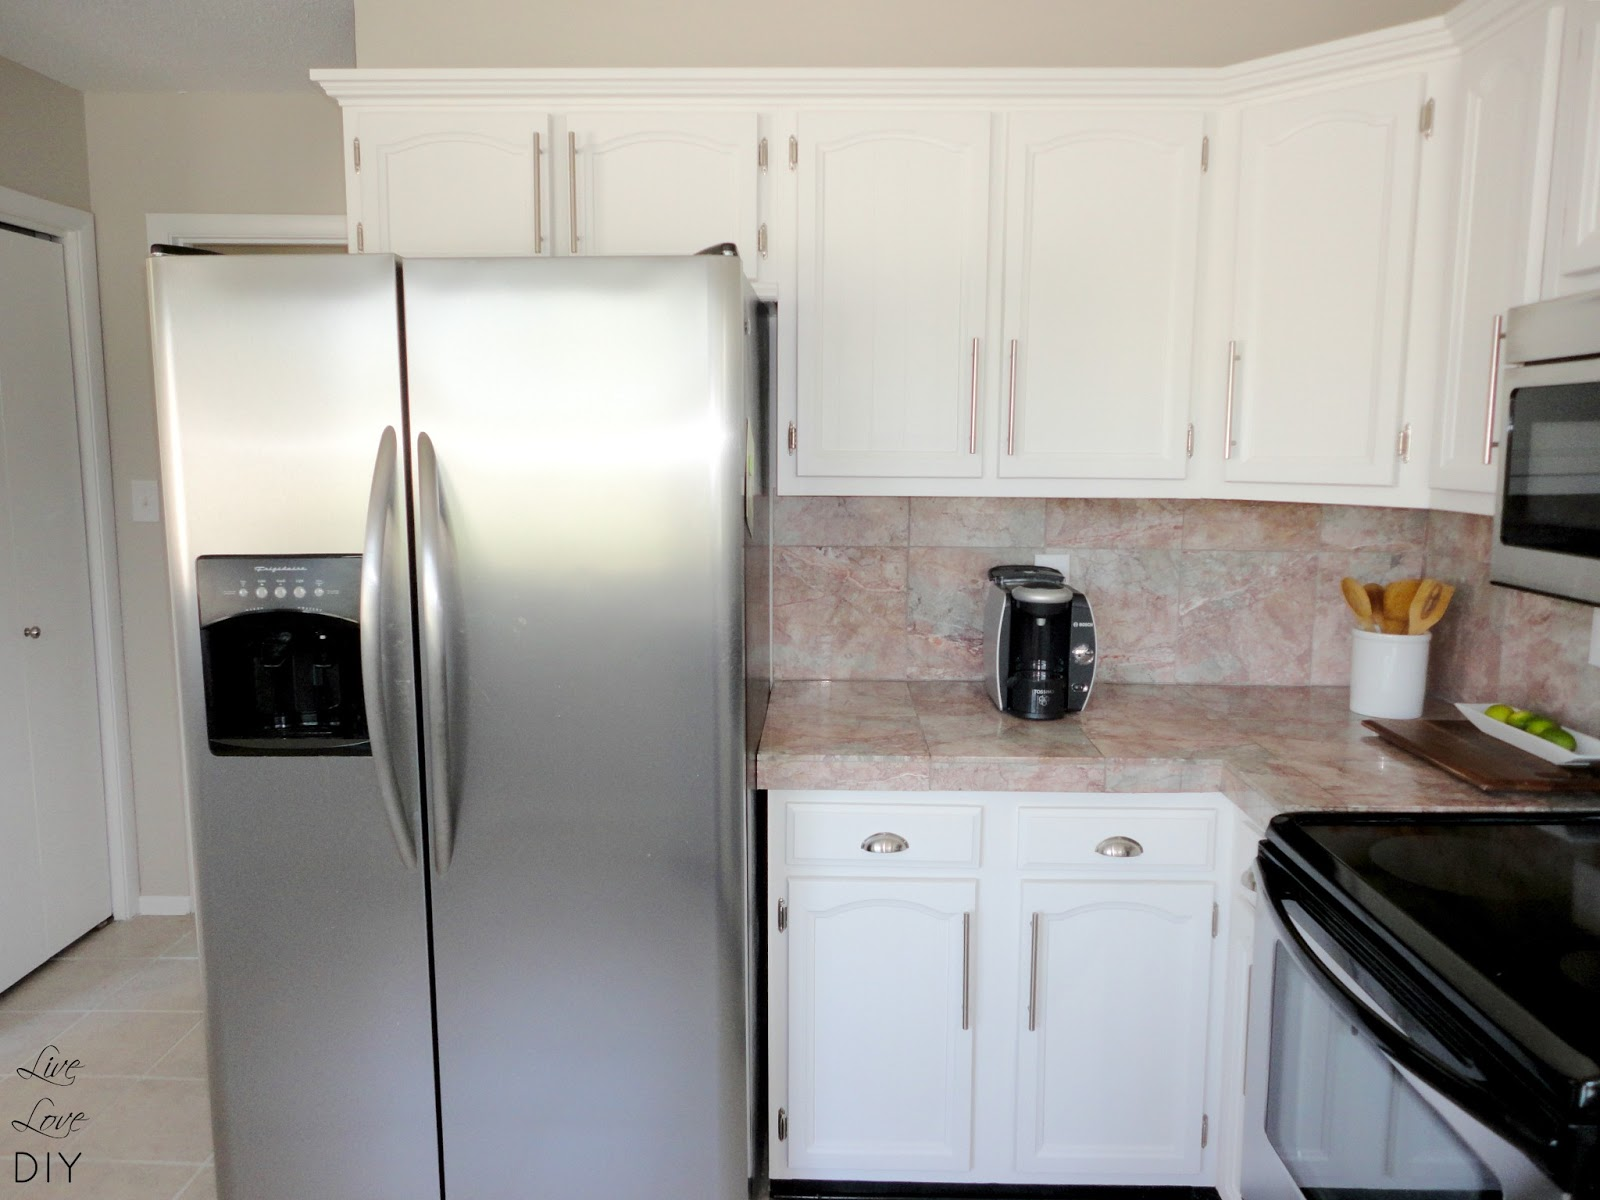 10 easy steps to paint kitchen cabinets paint kitchen cabinets white 10 steps to paint your kitchen cabinets the easy way an easy tutorial anyone can